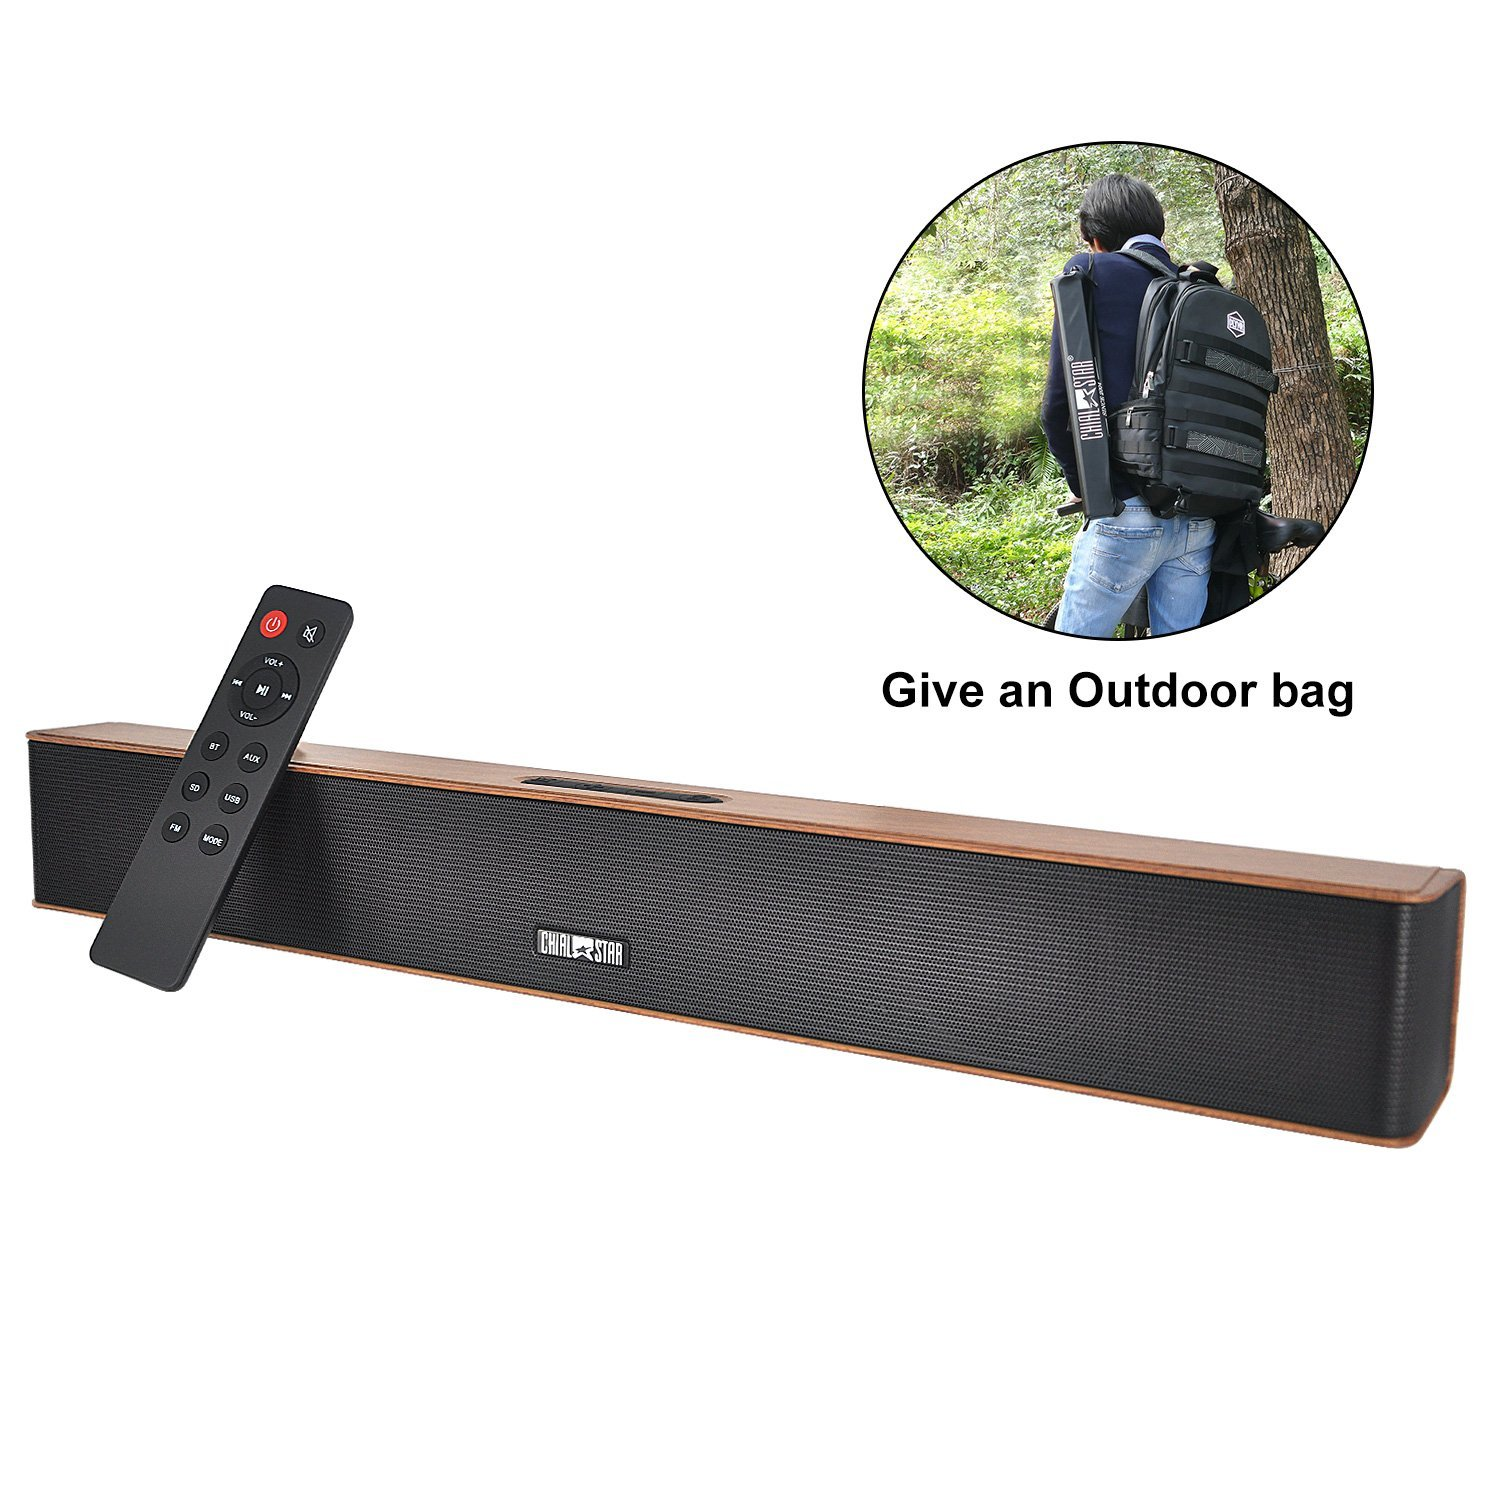 Wireless Sound Bar Brown Chialstar Portable Bluetooth Waterproof IPX5 Speakers Powerful Bass 21 Inch 12 hours Playing Time with Subwoofer Remote Control